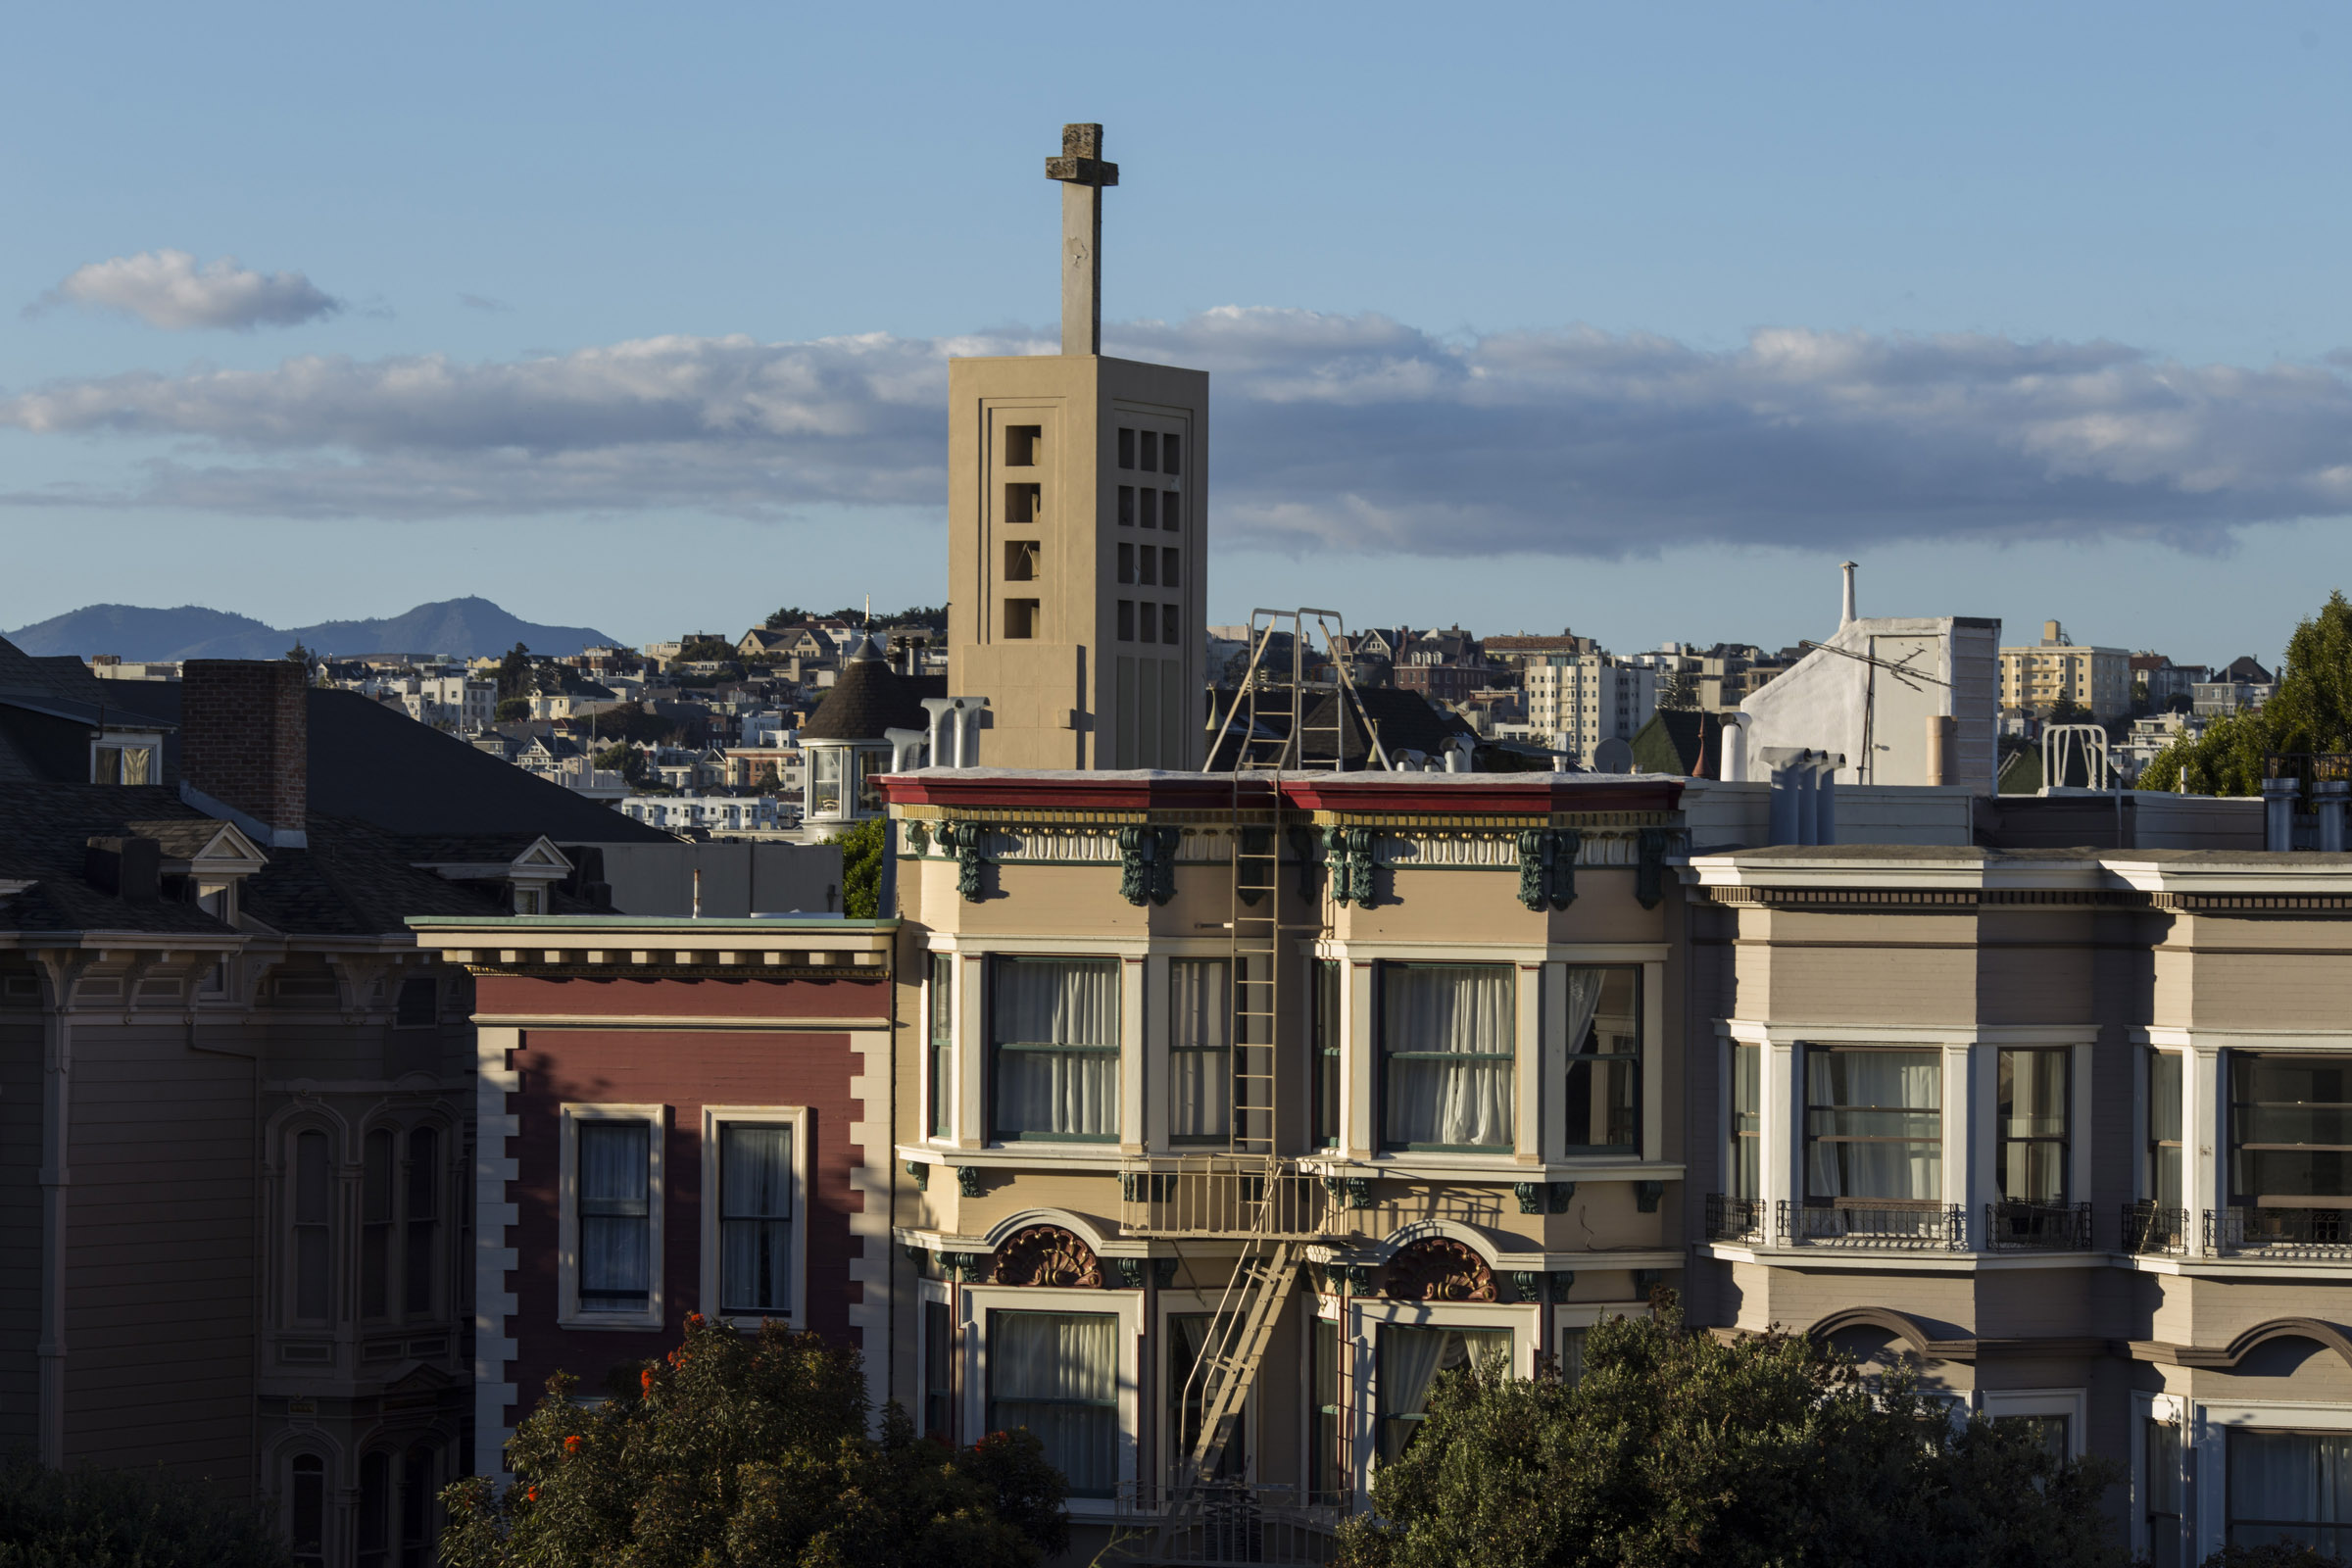 The Third Baptist Church towers above homes in the Fillmore District of San Francisco, California, on Tuesday, November 7, 2017. (Photo by Brittany Greeson)